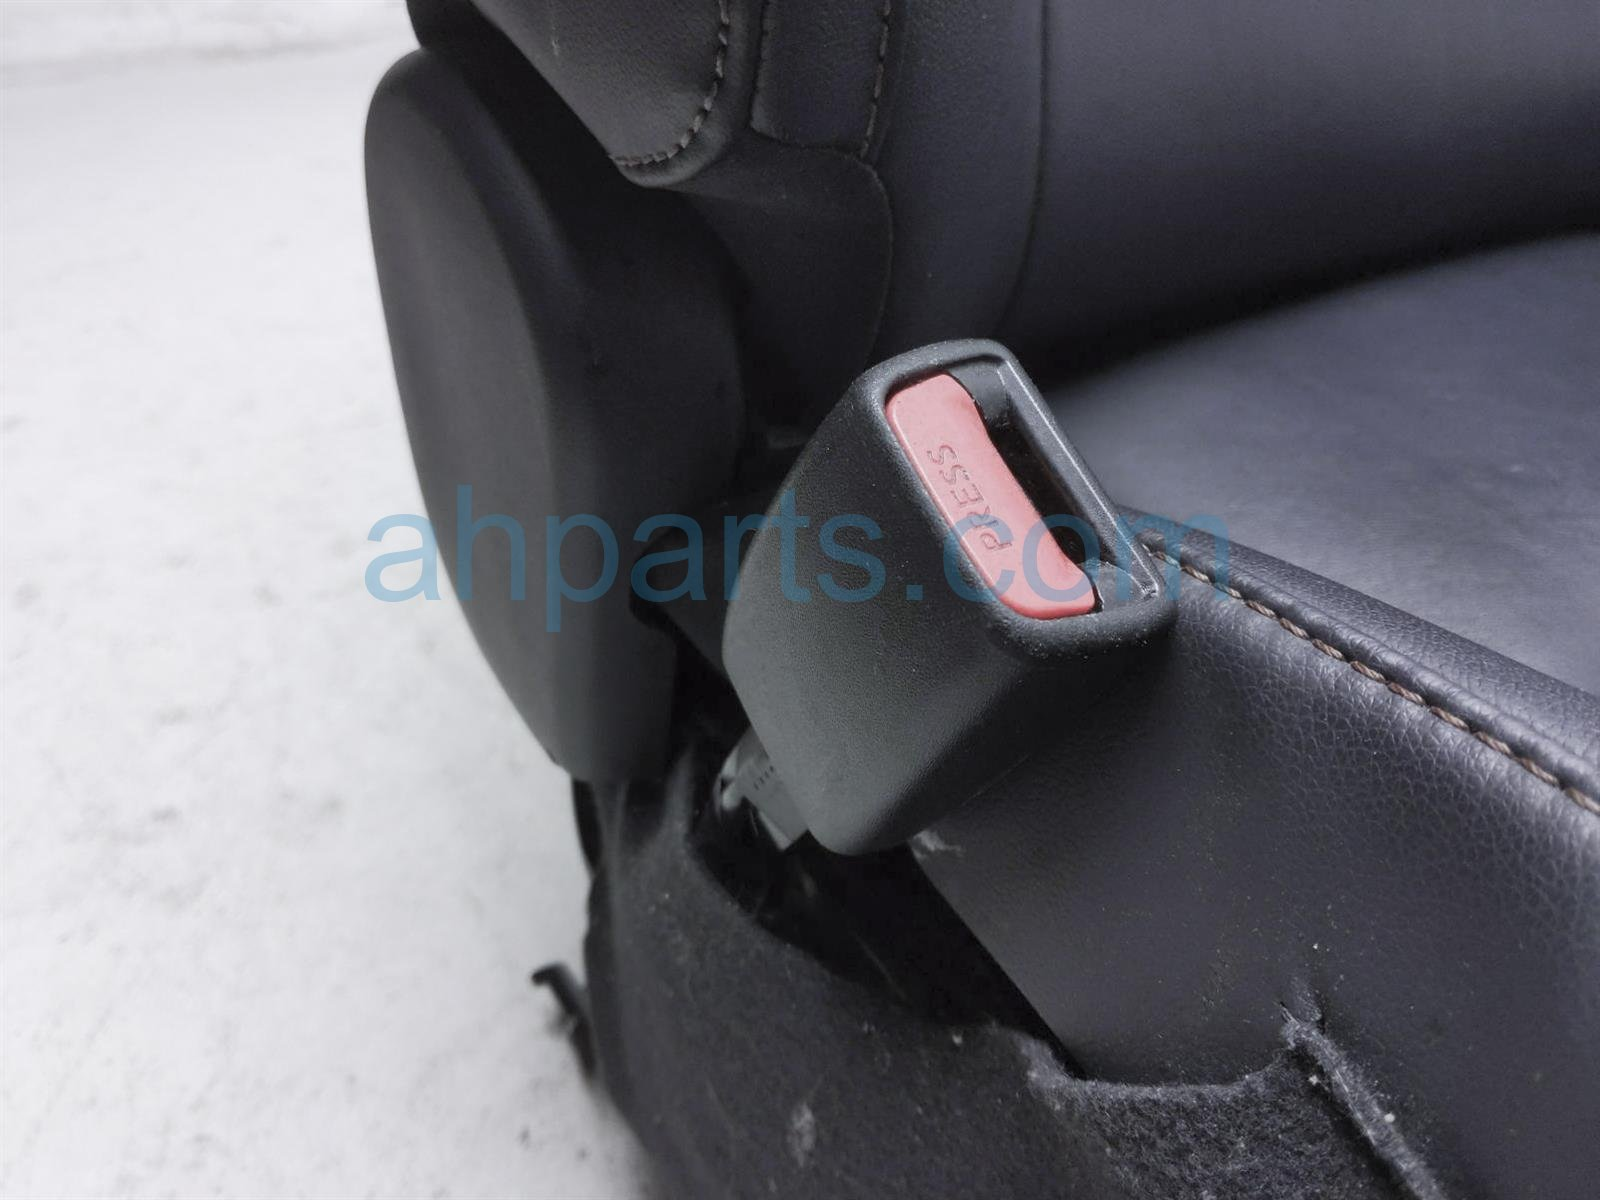 2014 Toyota Highlander Front Driver Seat   Black   W/ Airbag 71072 0E290 C1 Replacement